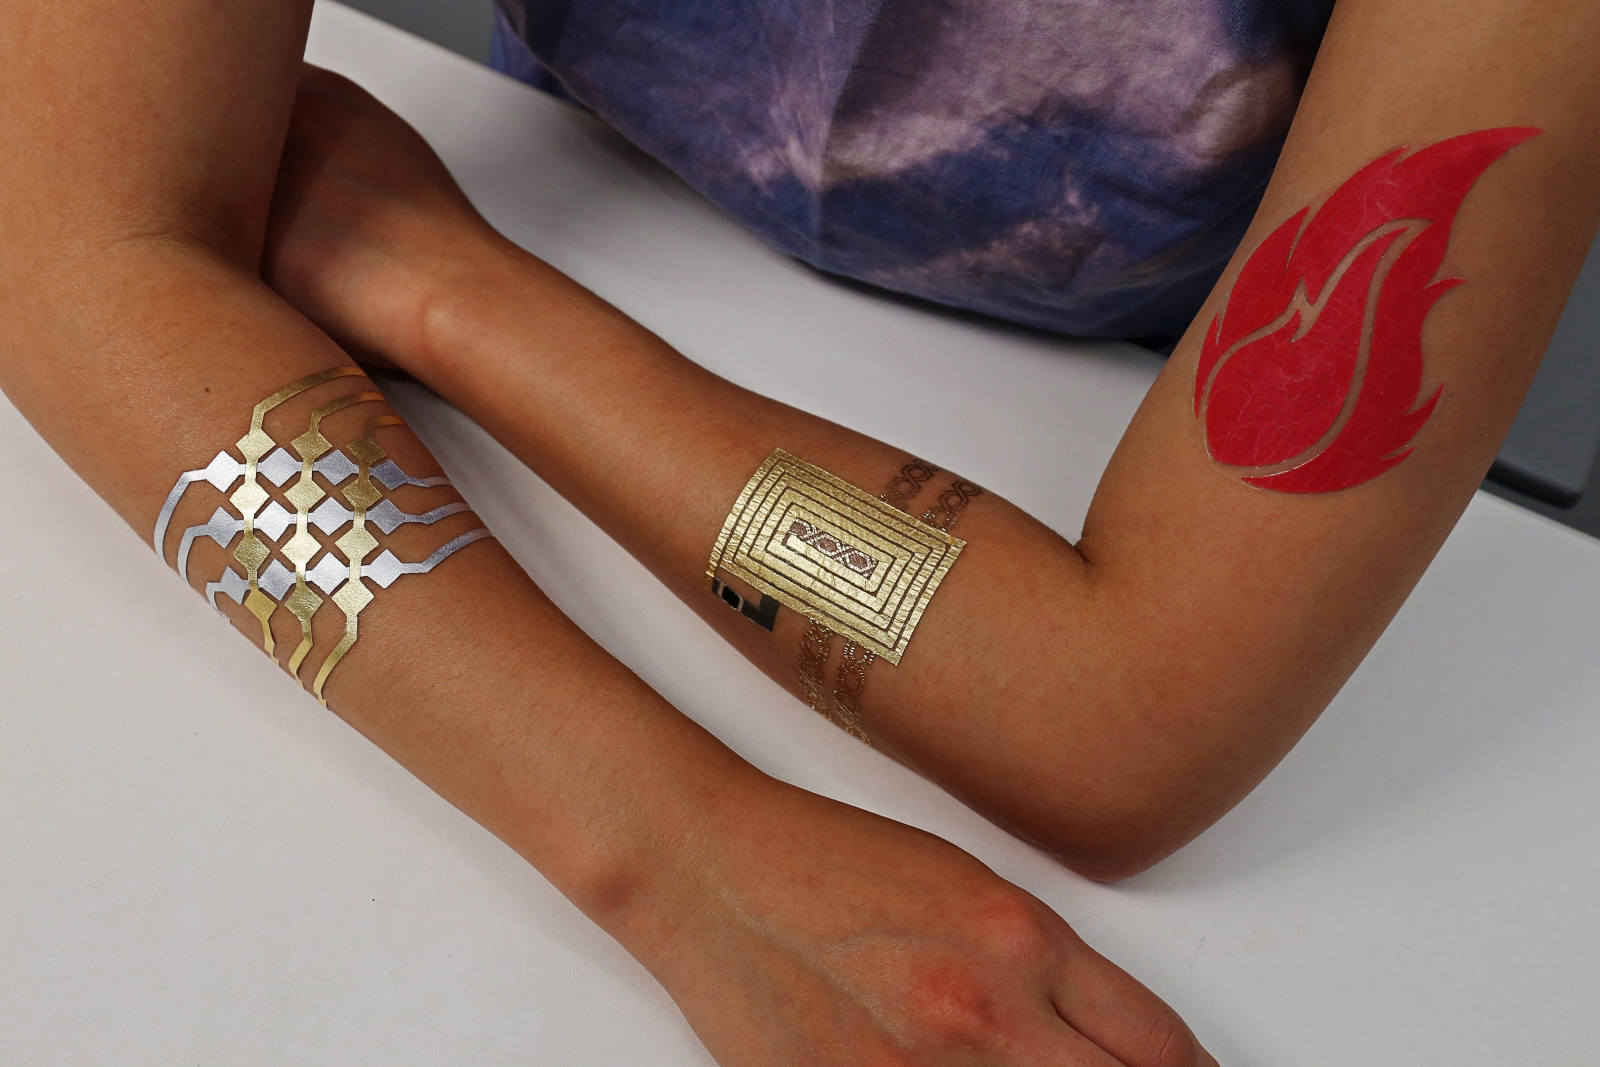 DuoSkin temporary tattoos